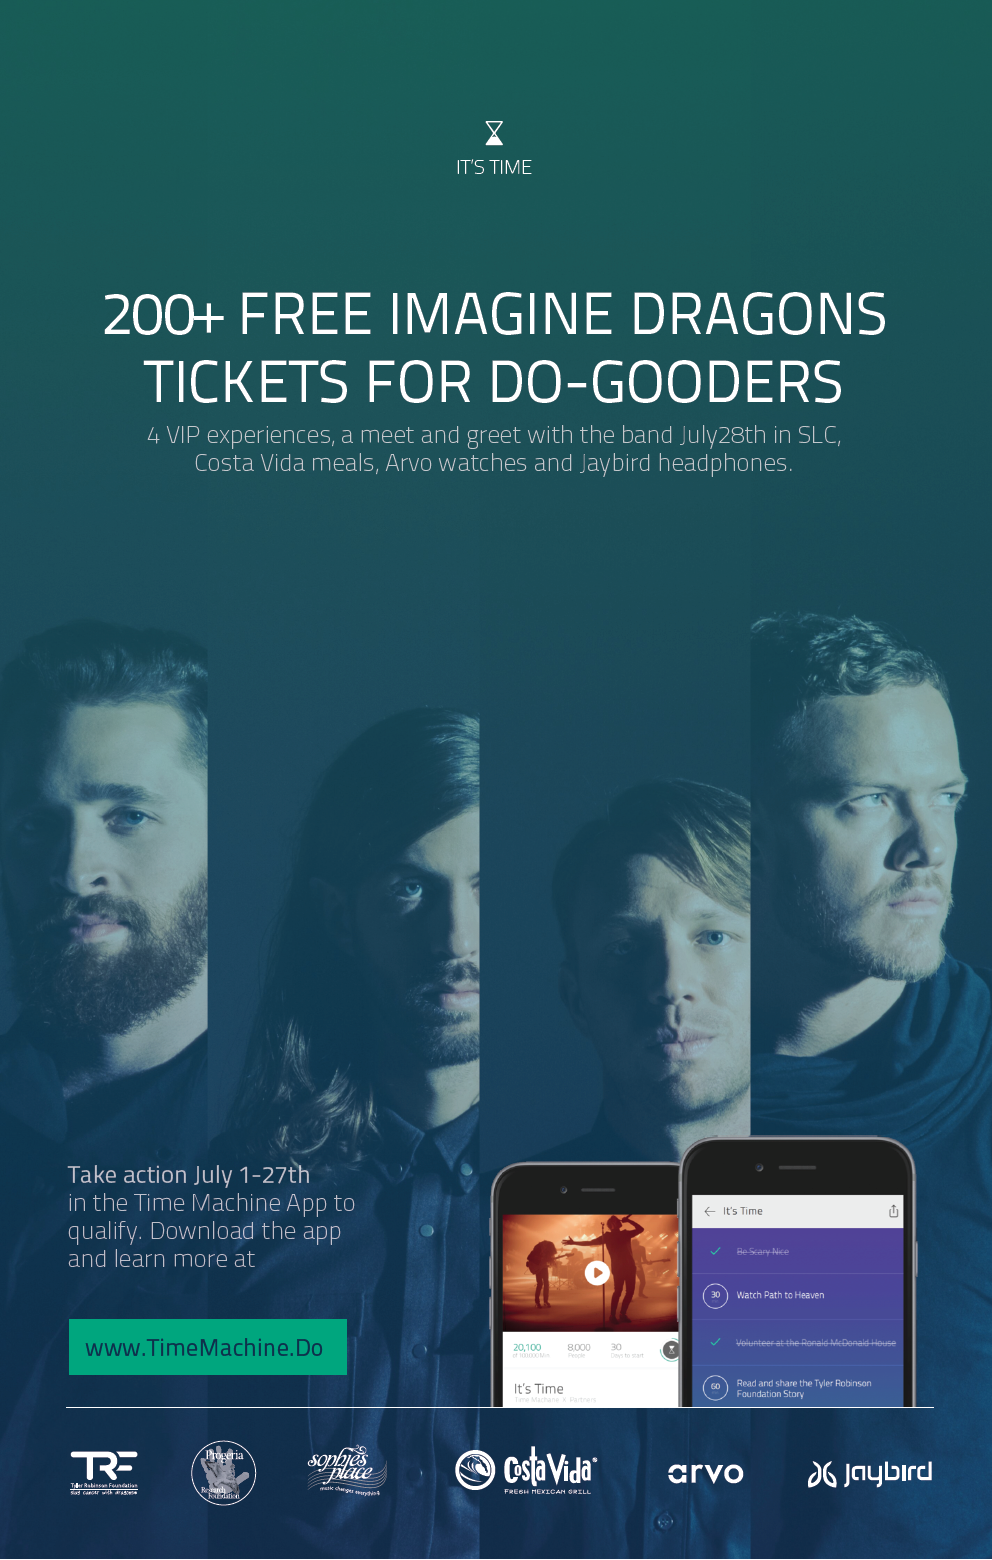 Imagine Dragons Tickets for Do-Gooders